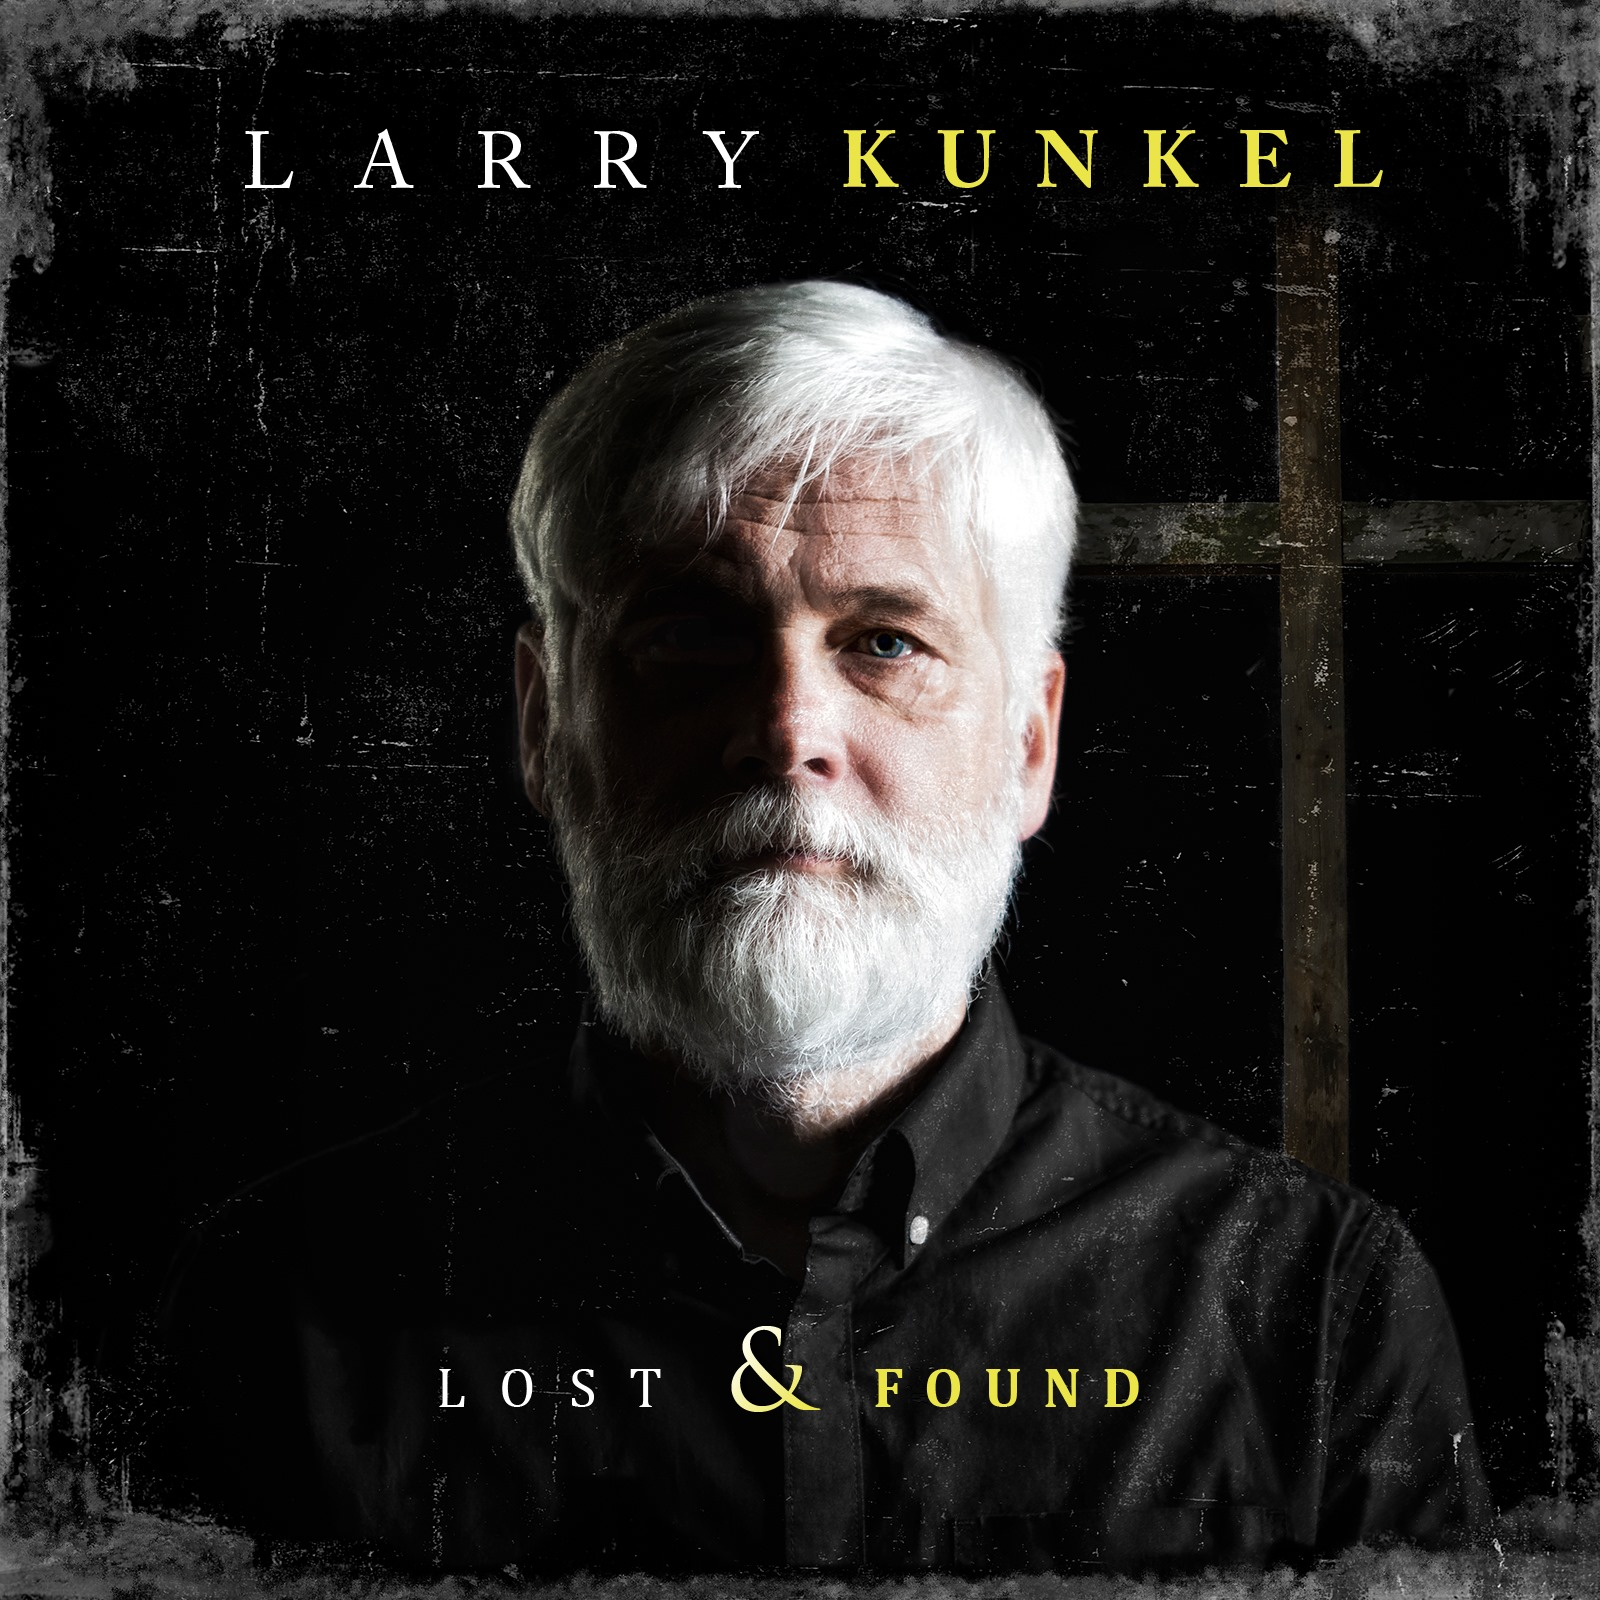 Lost & Found, Larry Kunkel's newest album cover